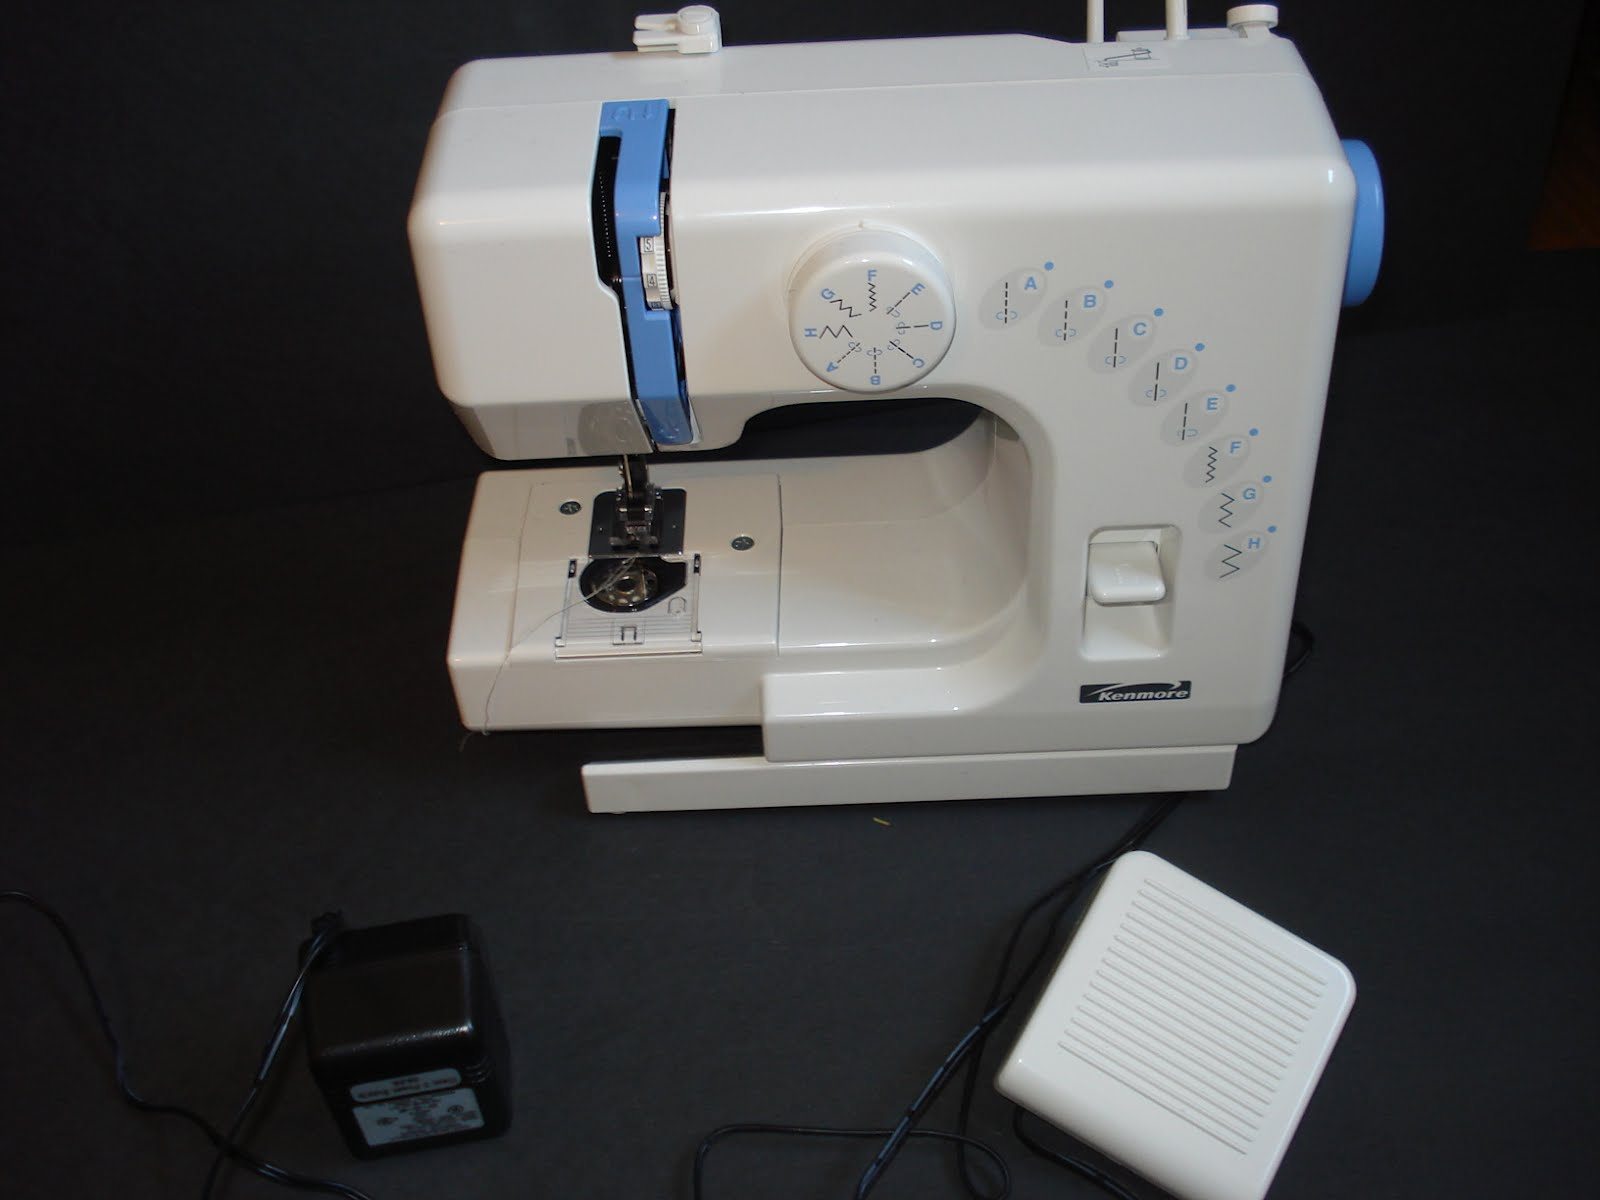 Where Can I Buy A Small Sewing Machine